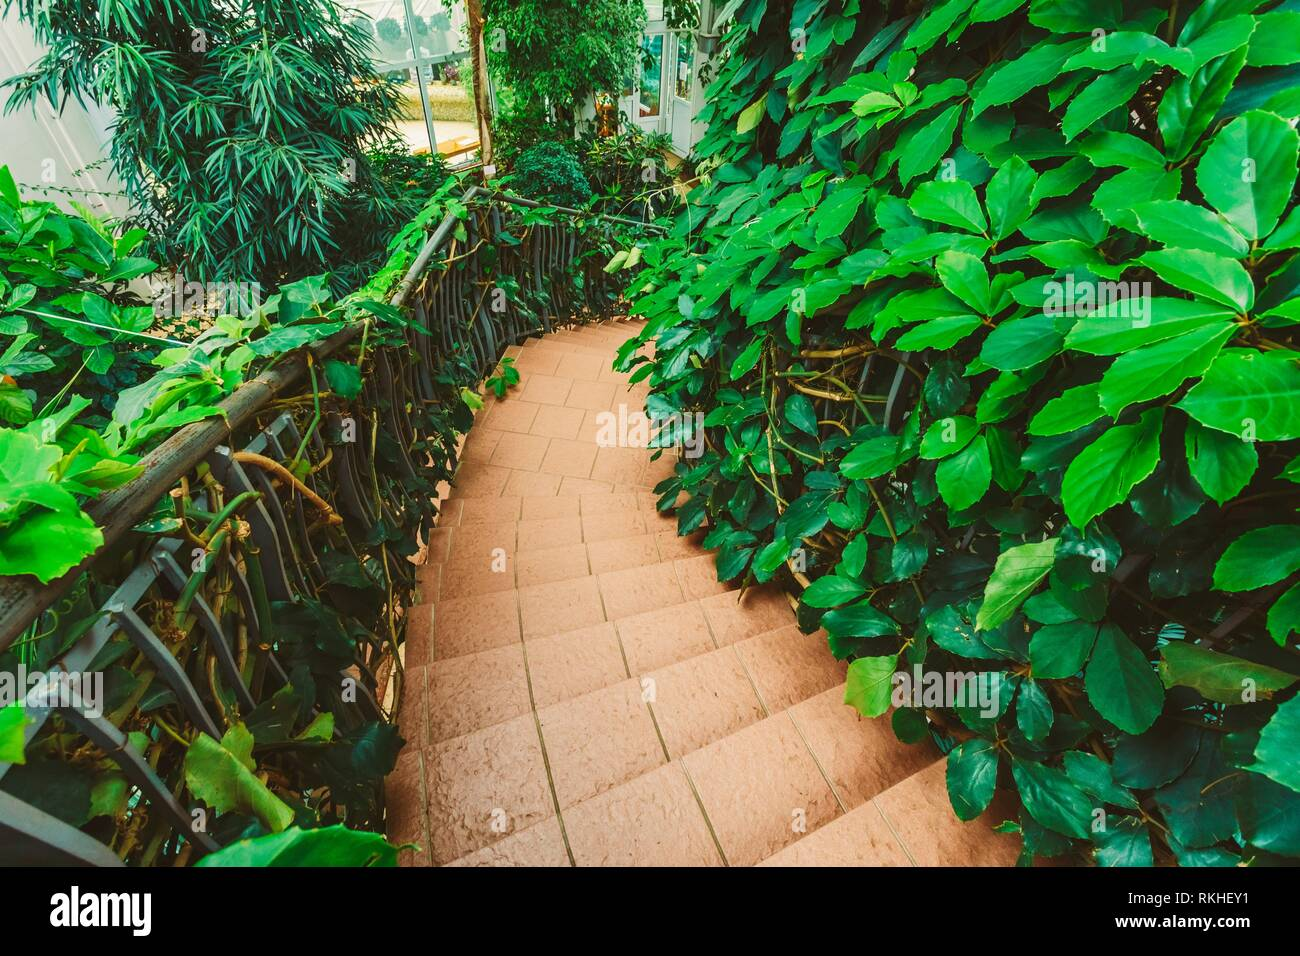 Greenhouse With Flowers And Plants. Temperate House Conservatory, Botanical Gardens. - Stock Image